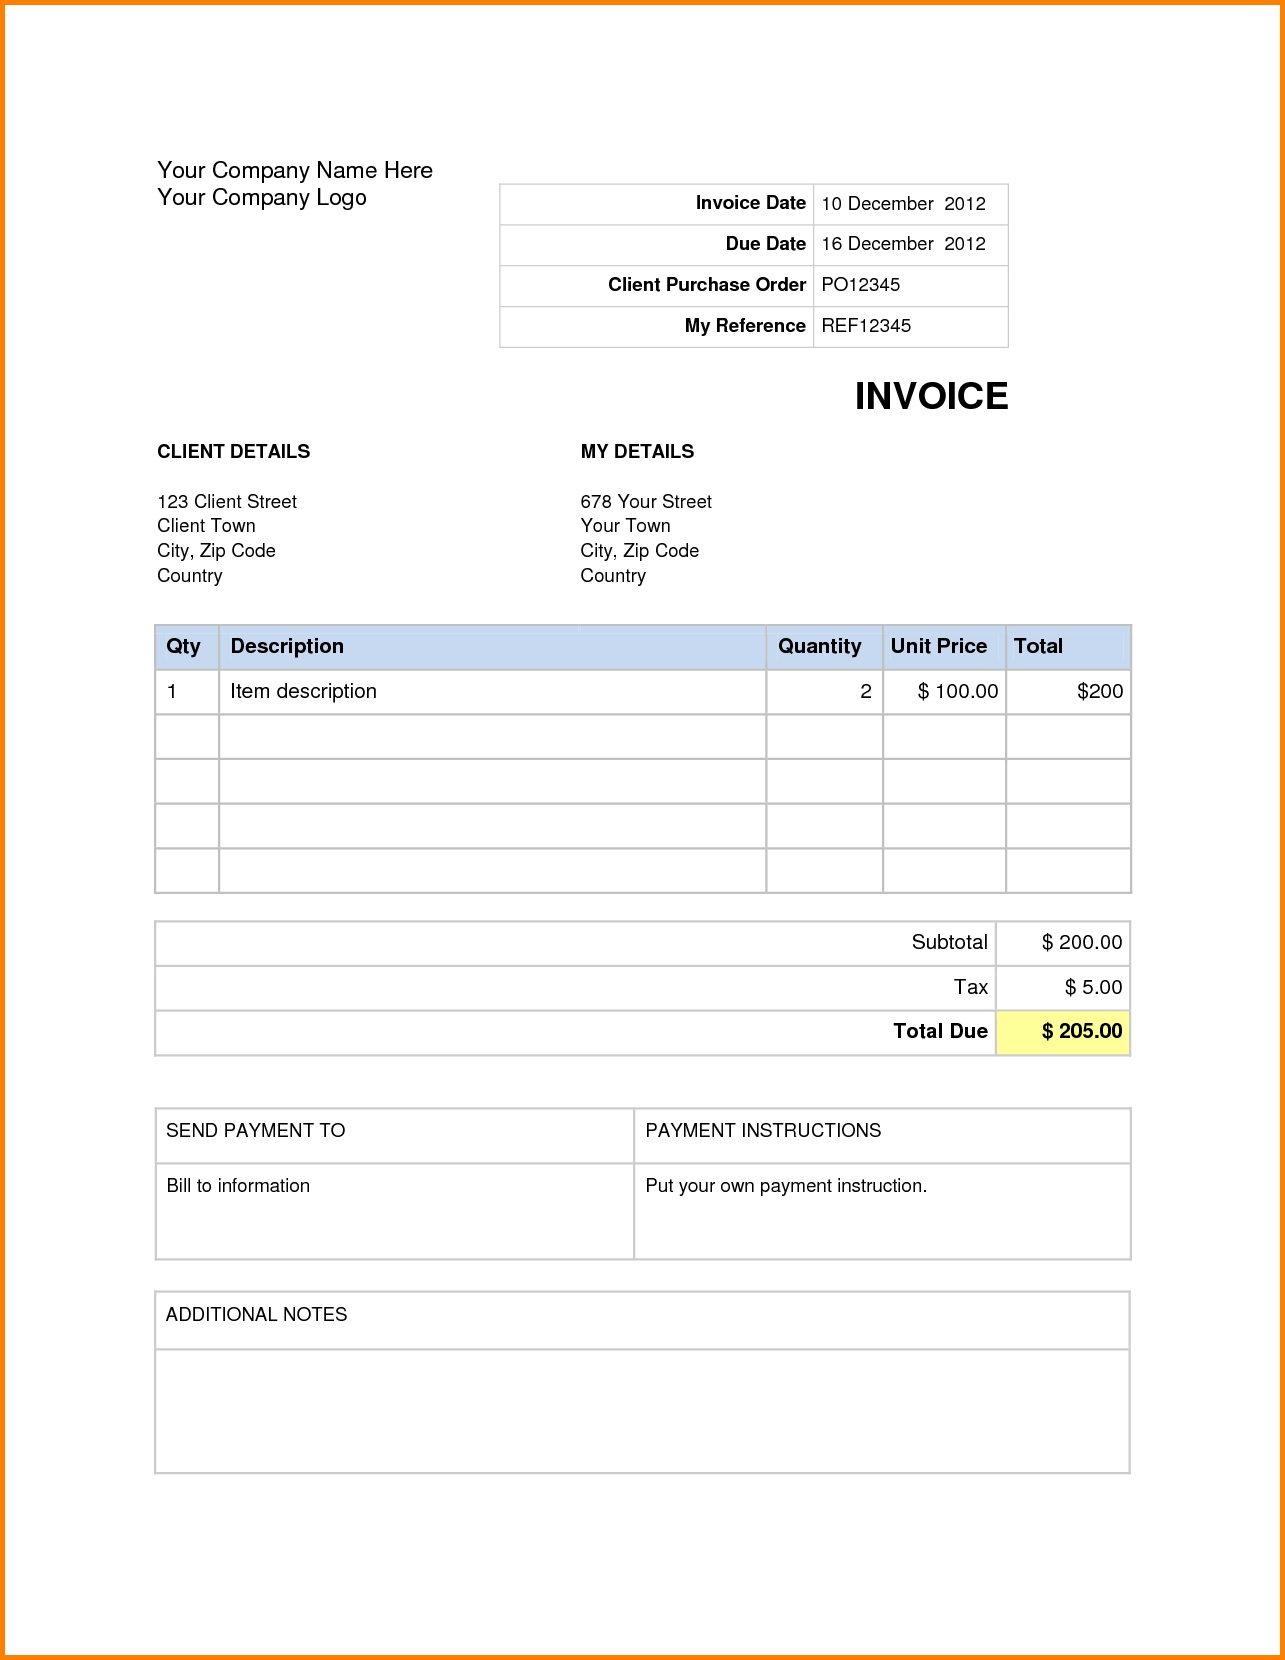 ms invoice template excel commission excel templates 19 blank invoice templates in ms 1285 X 1660